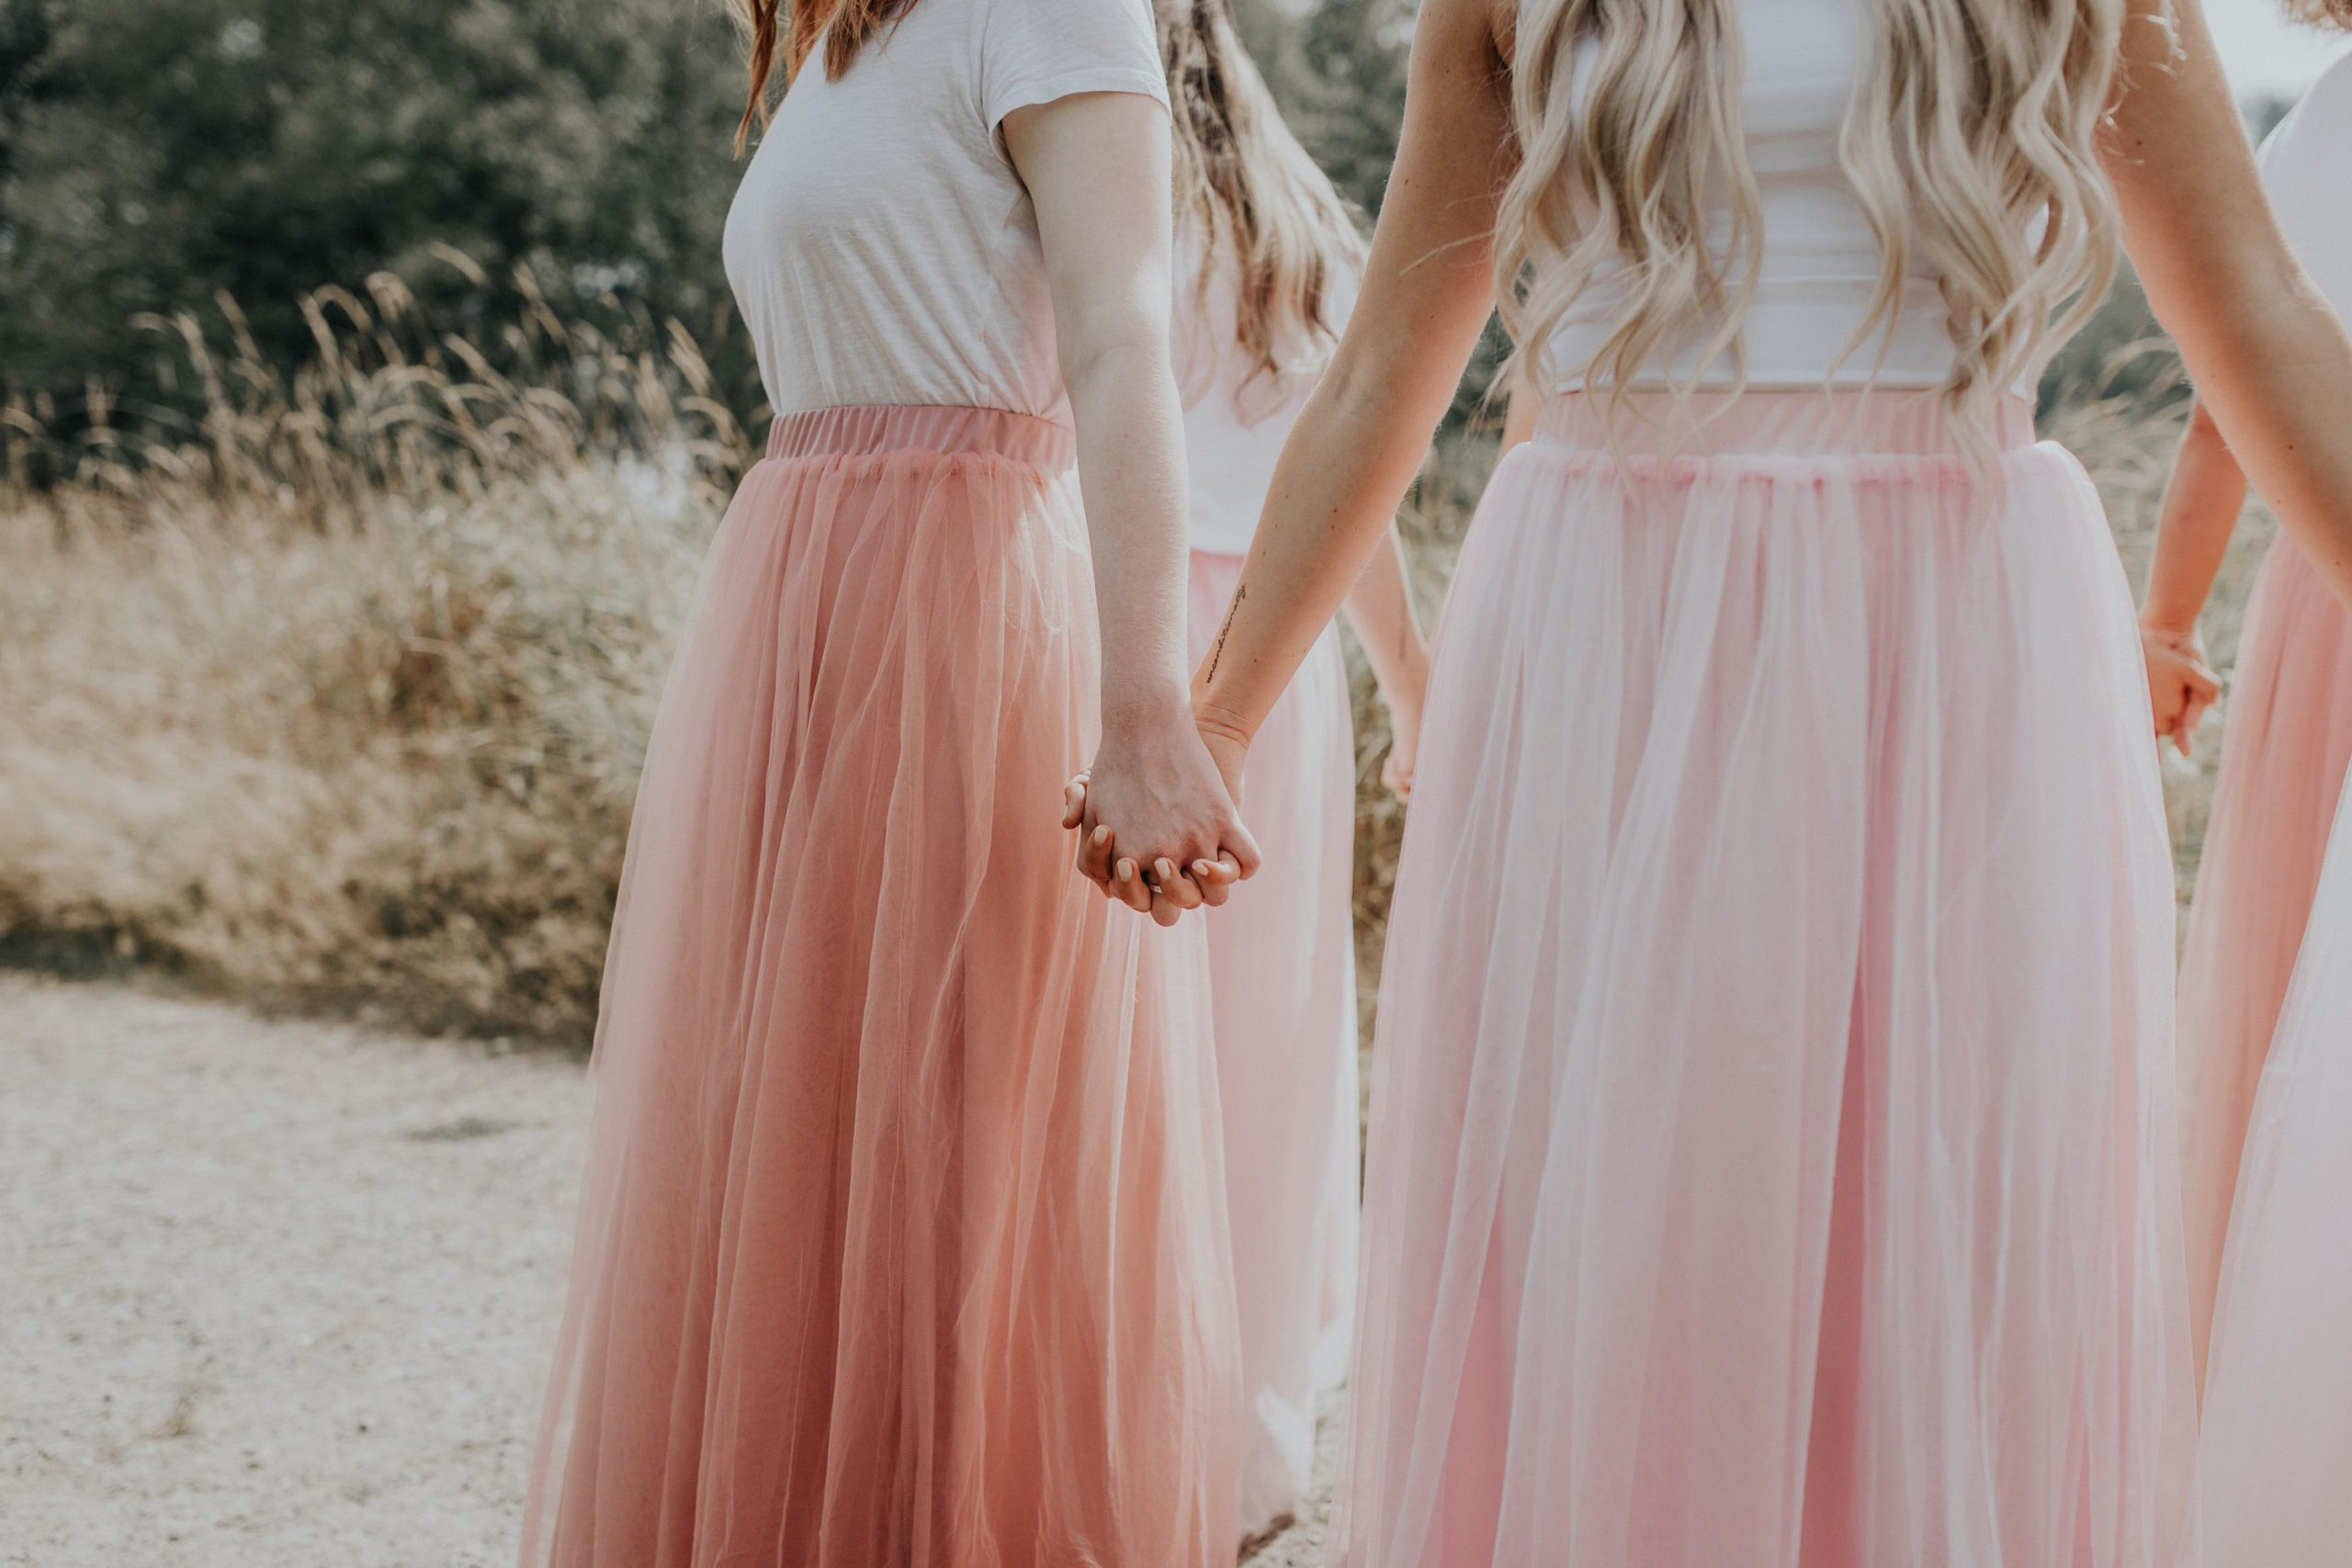 women in pink skirts holding hands; toxic femininity